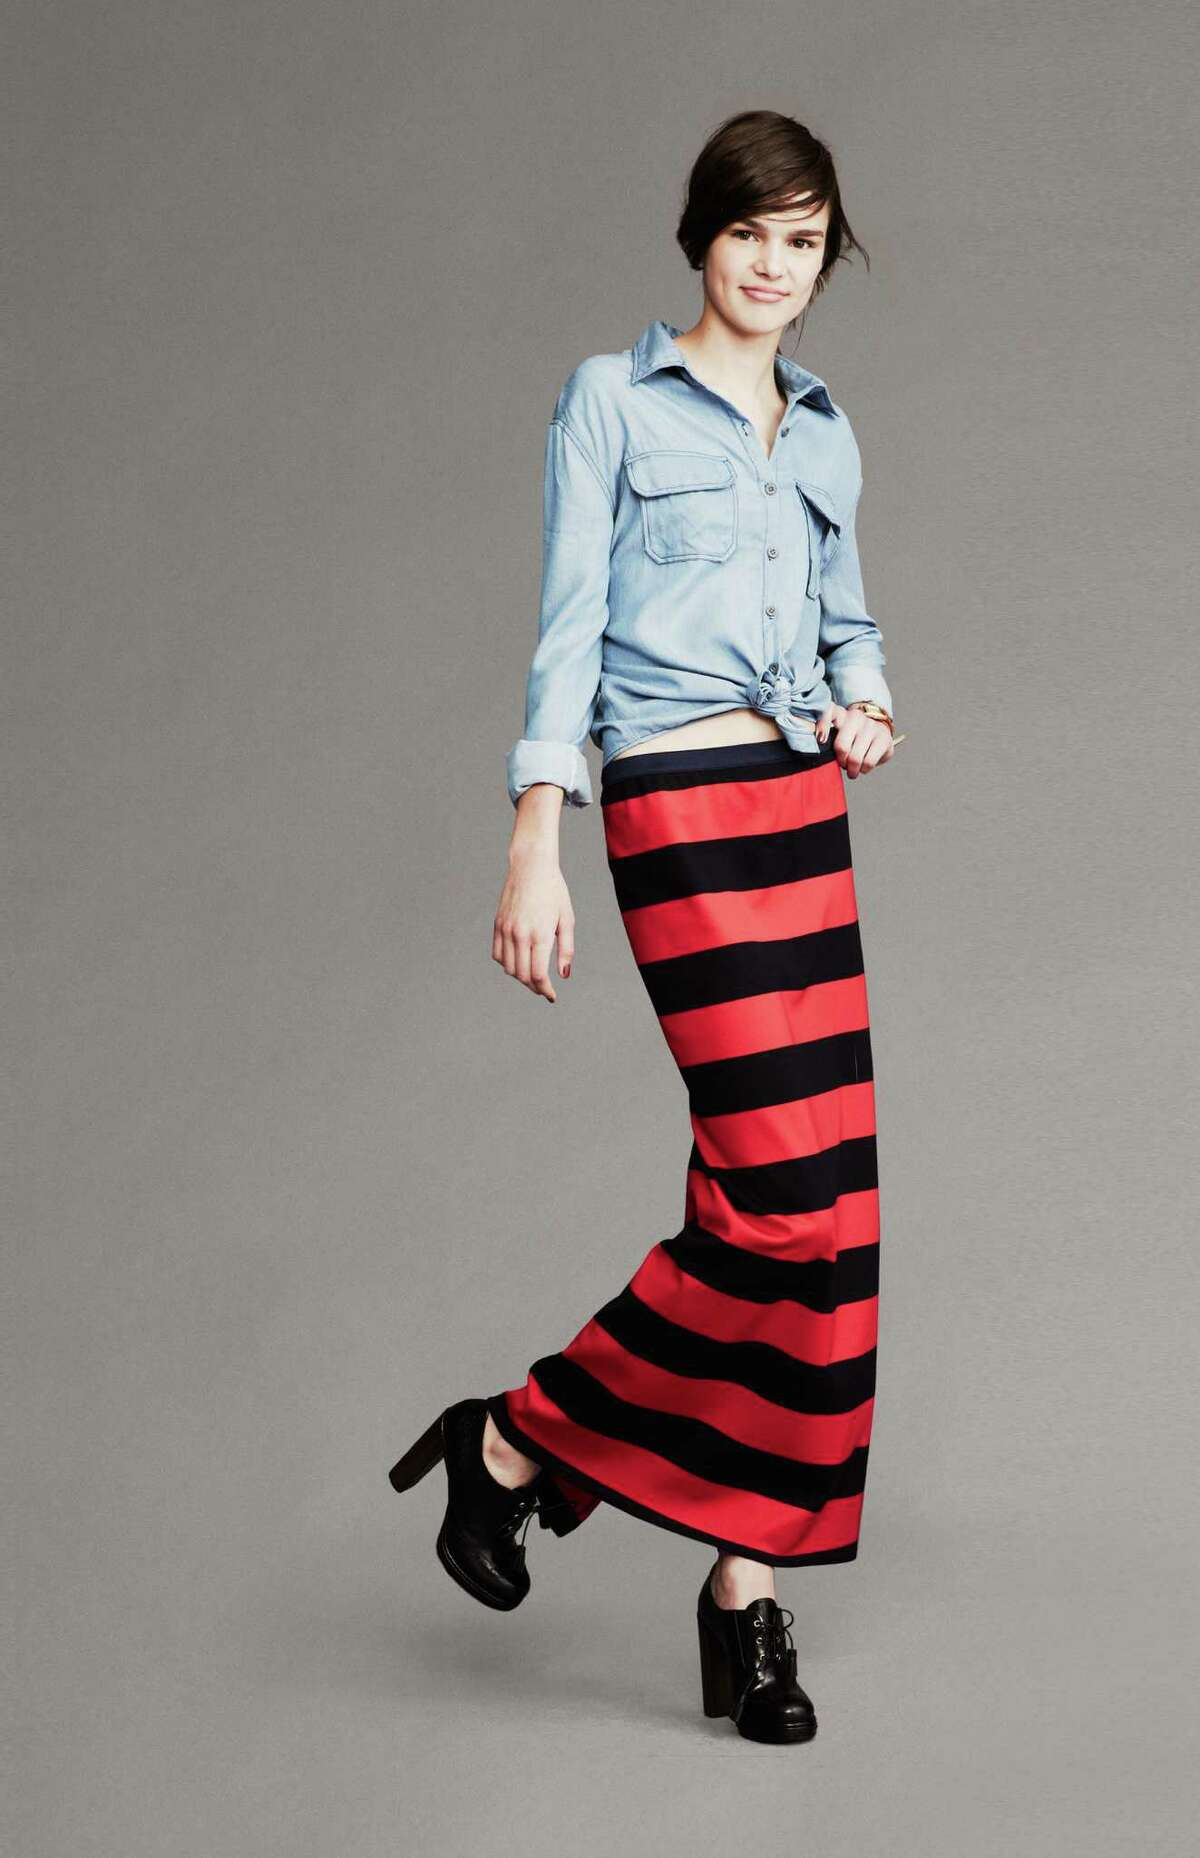 A chambray denim shirt is teamed with an awning-striped maxi skirt.